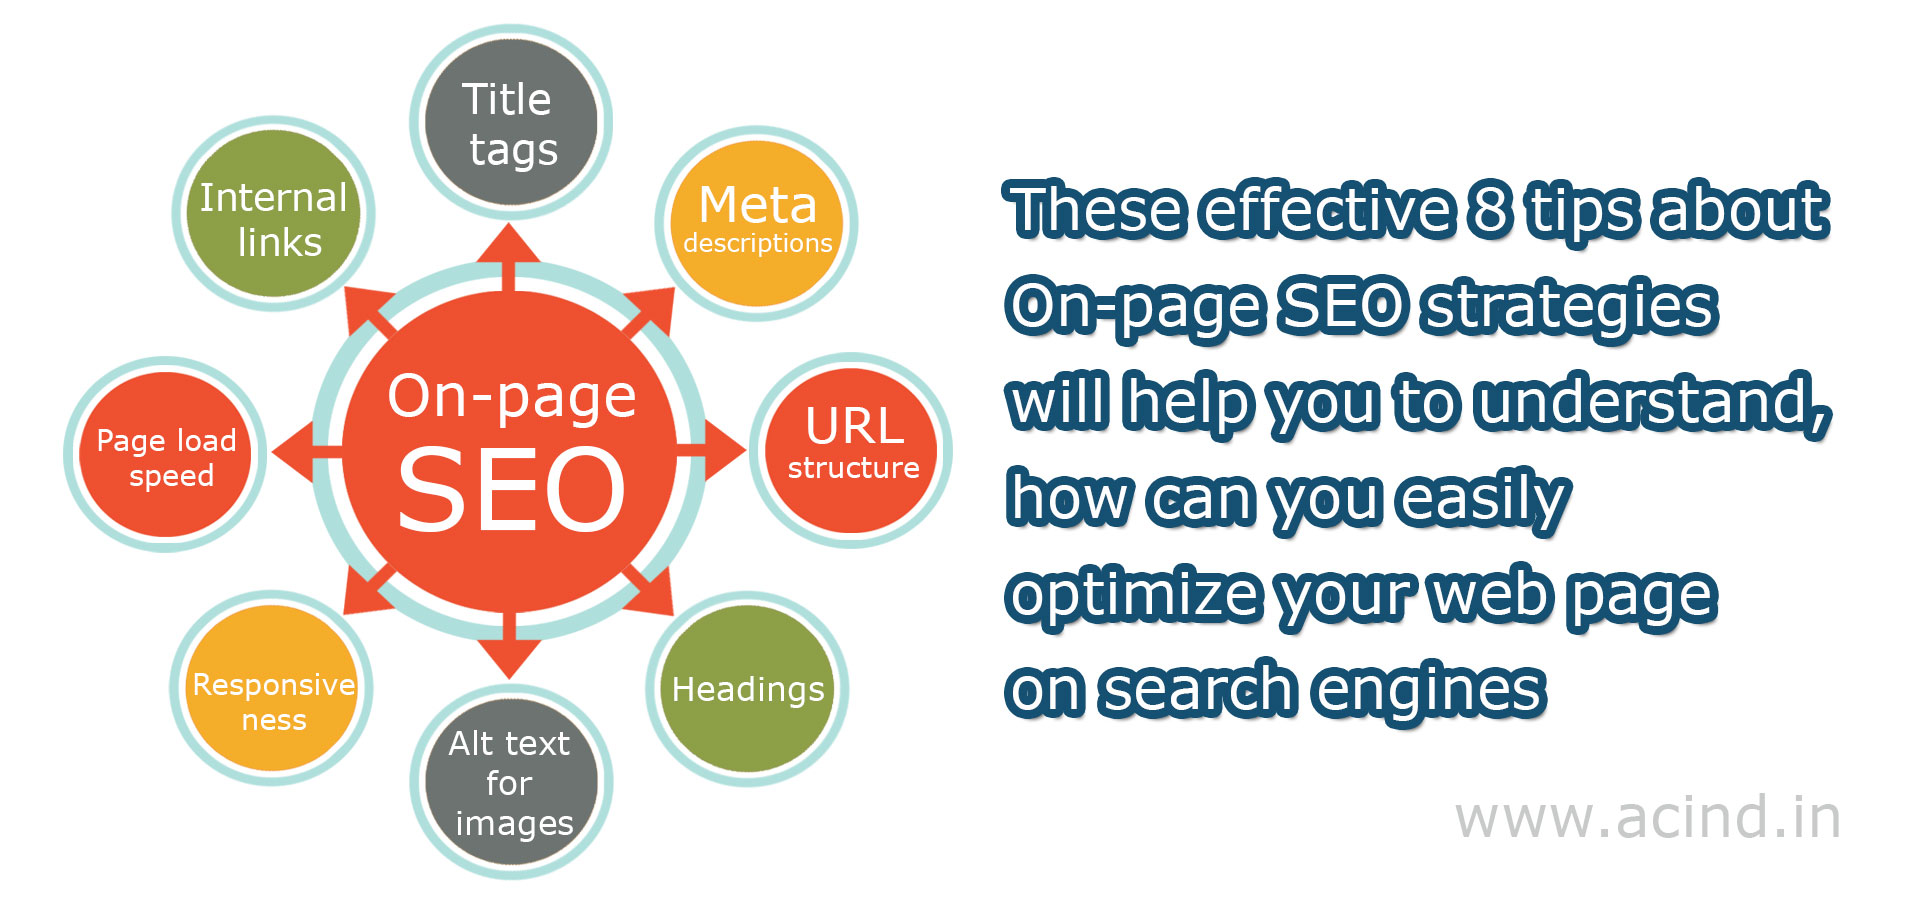 8 Tips about On-page SEO strategies